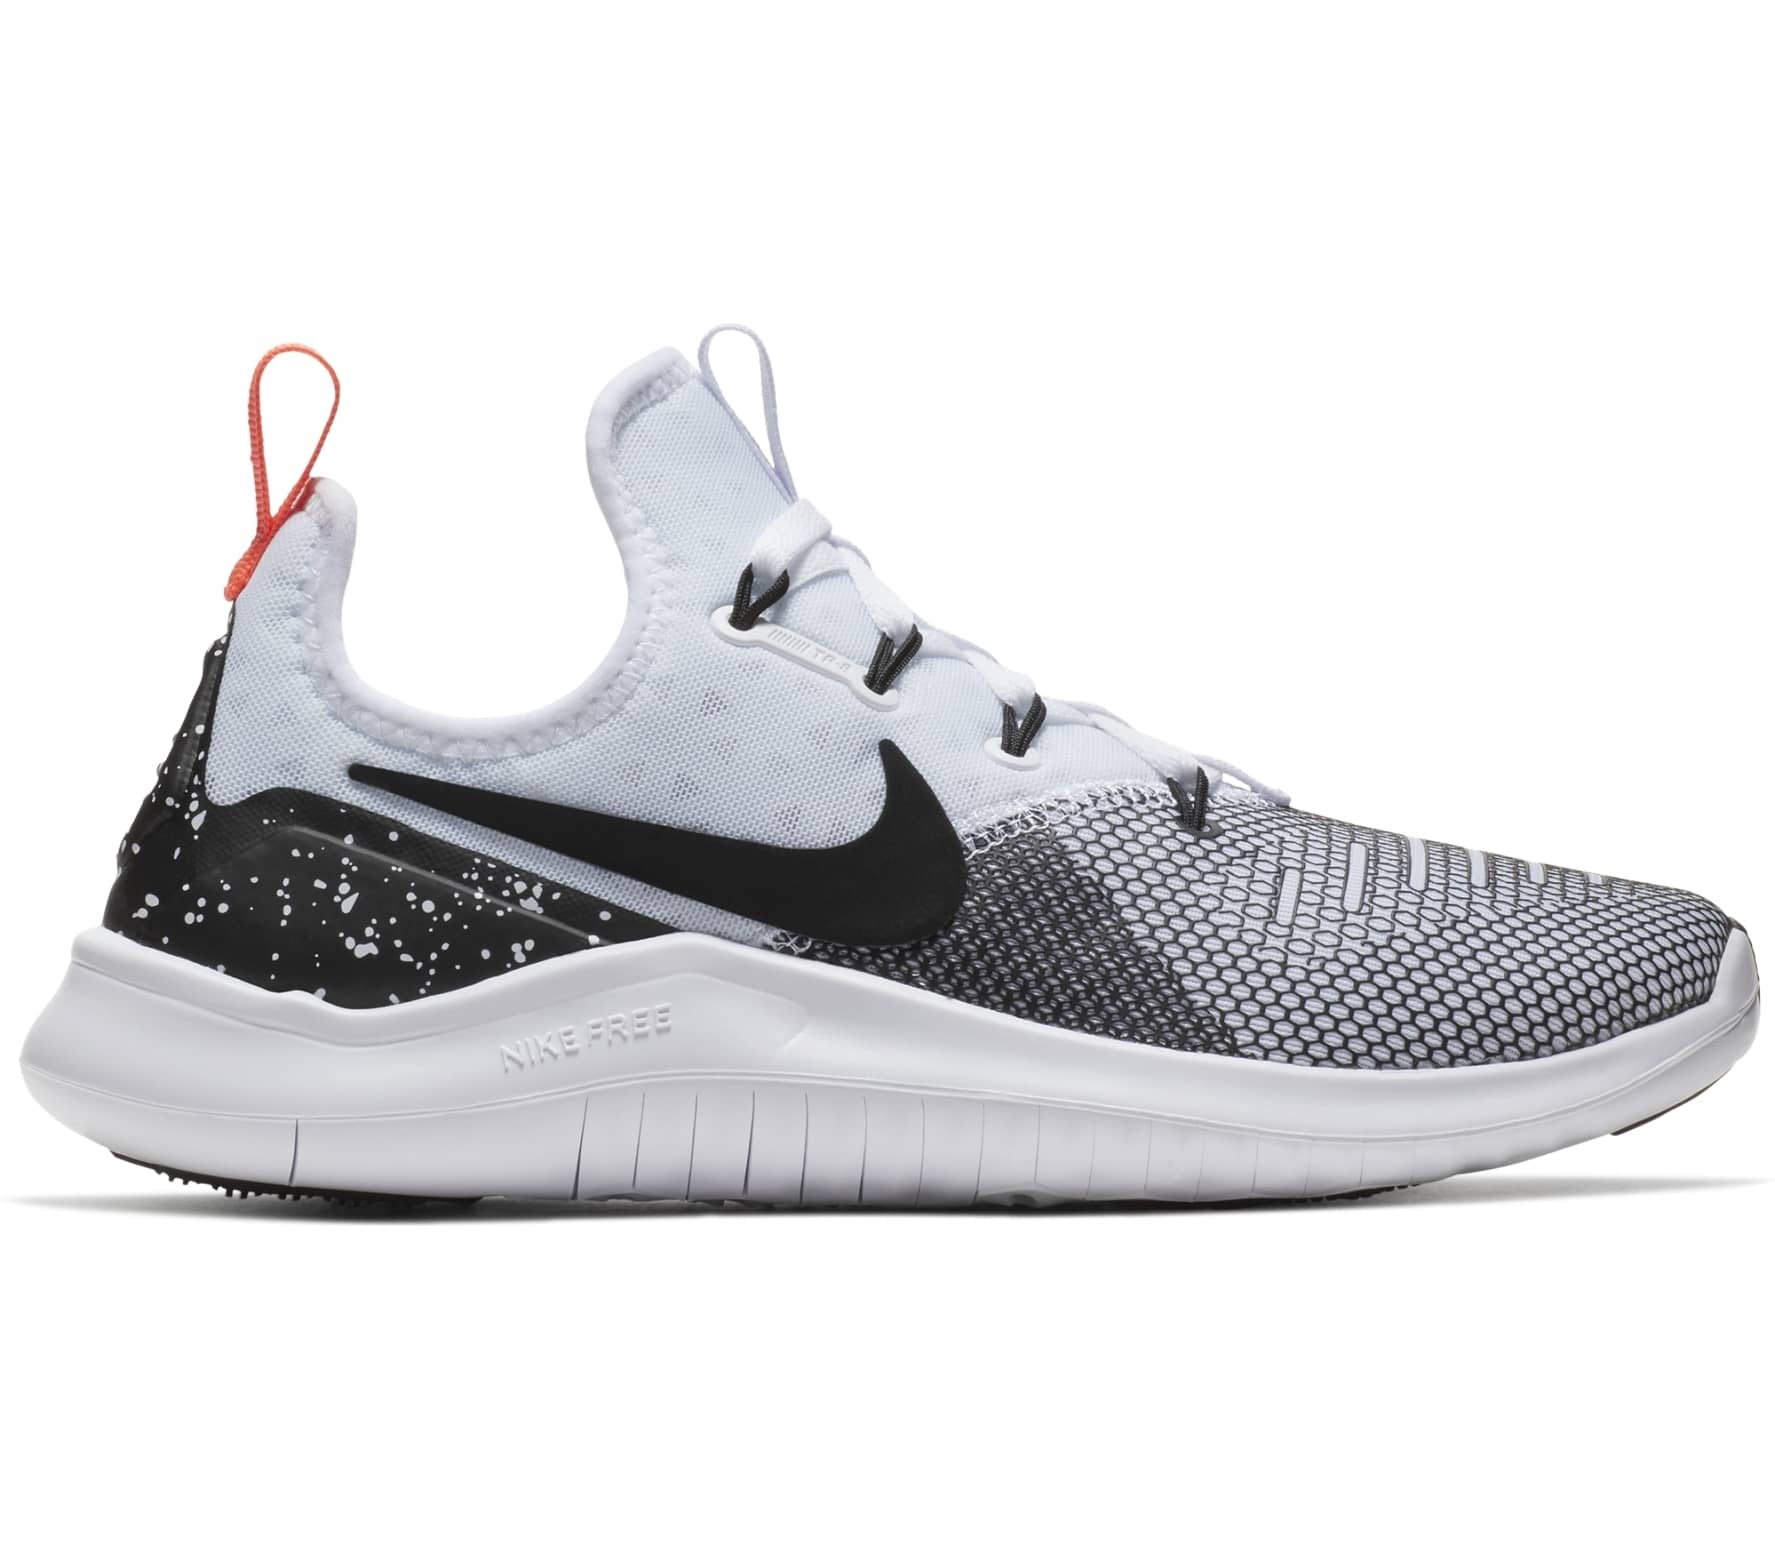 new styles 70dcf 51987 Nike - Free TR 8 womens training shoes (greywhite)